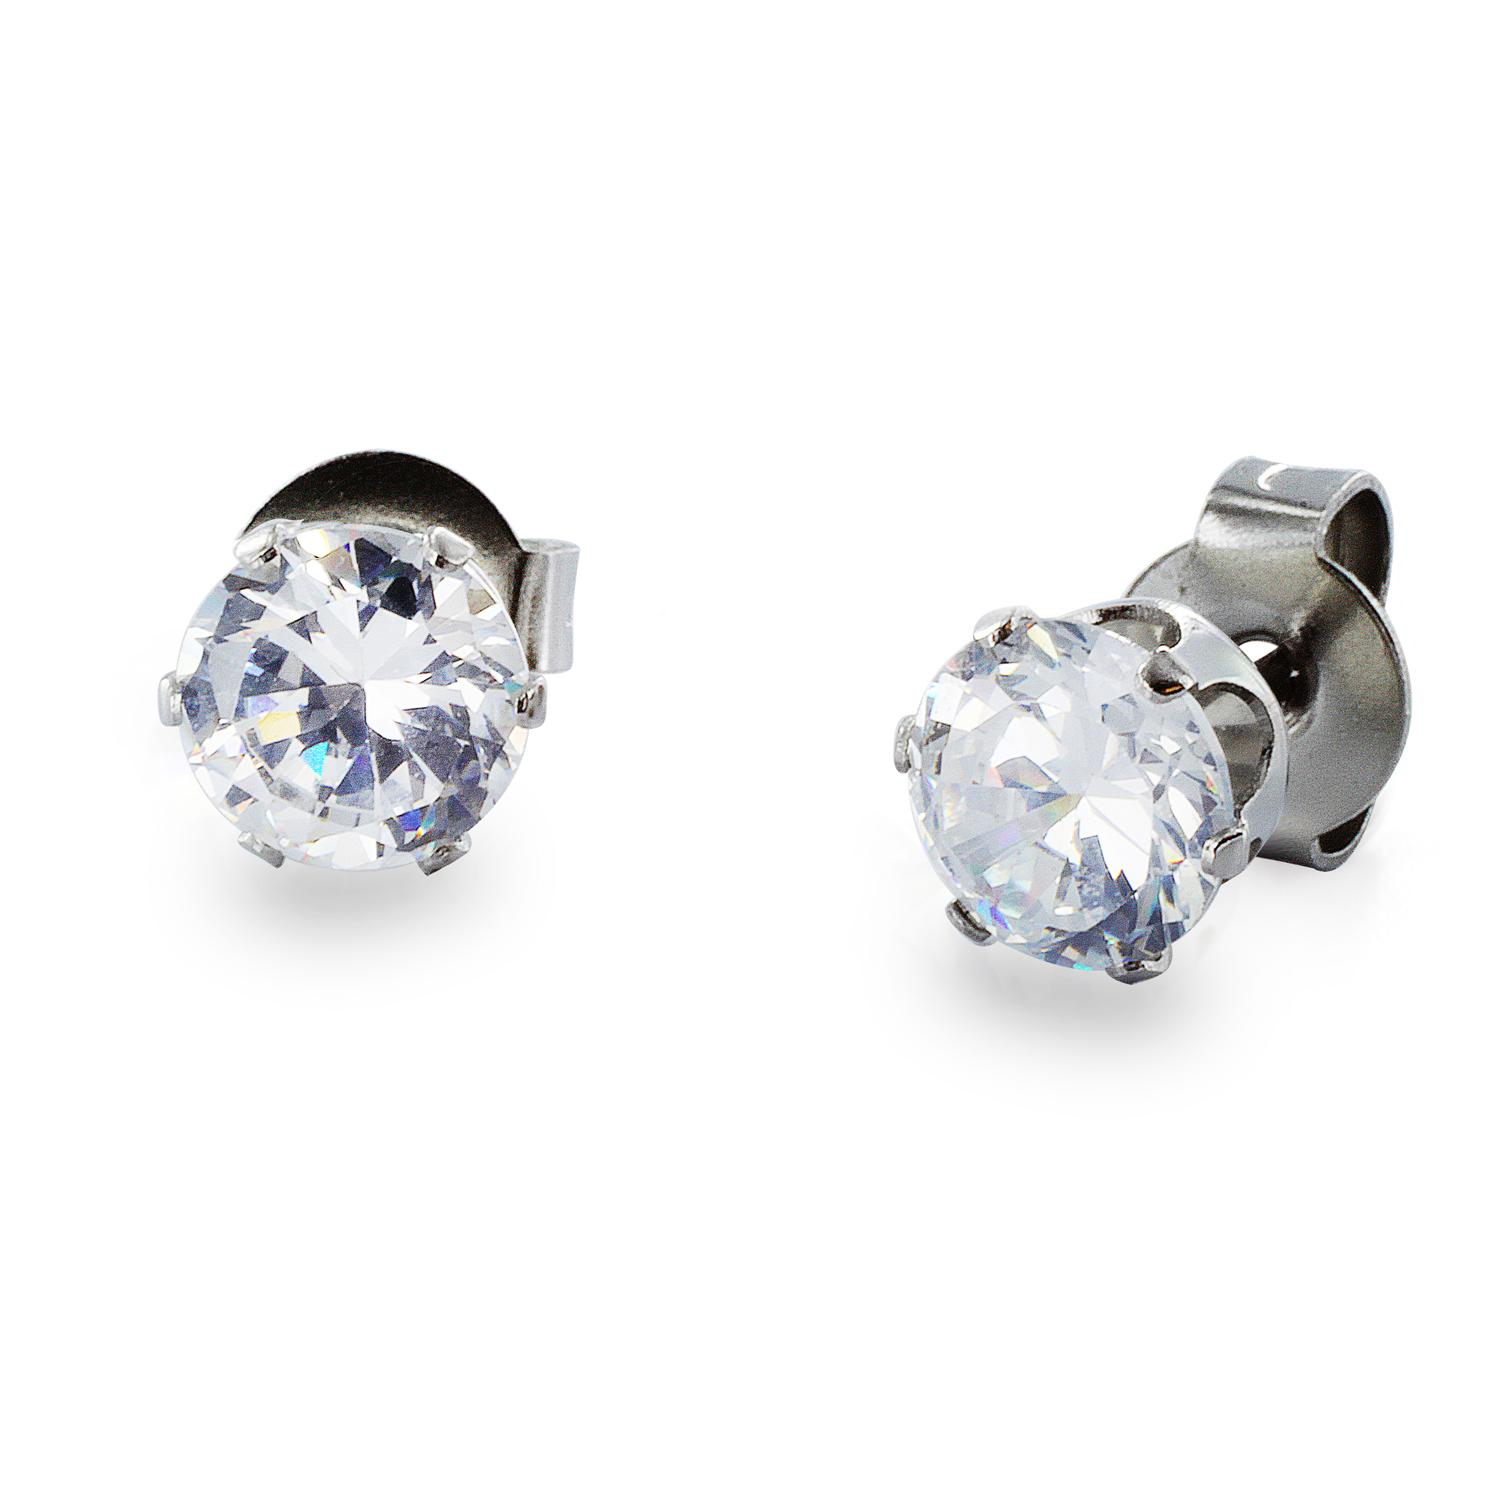 Stainless Steel Stud Earrings with Round Clear CZ - 3 mm